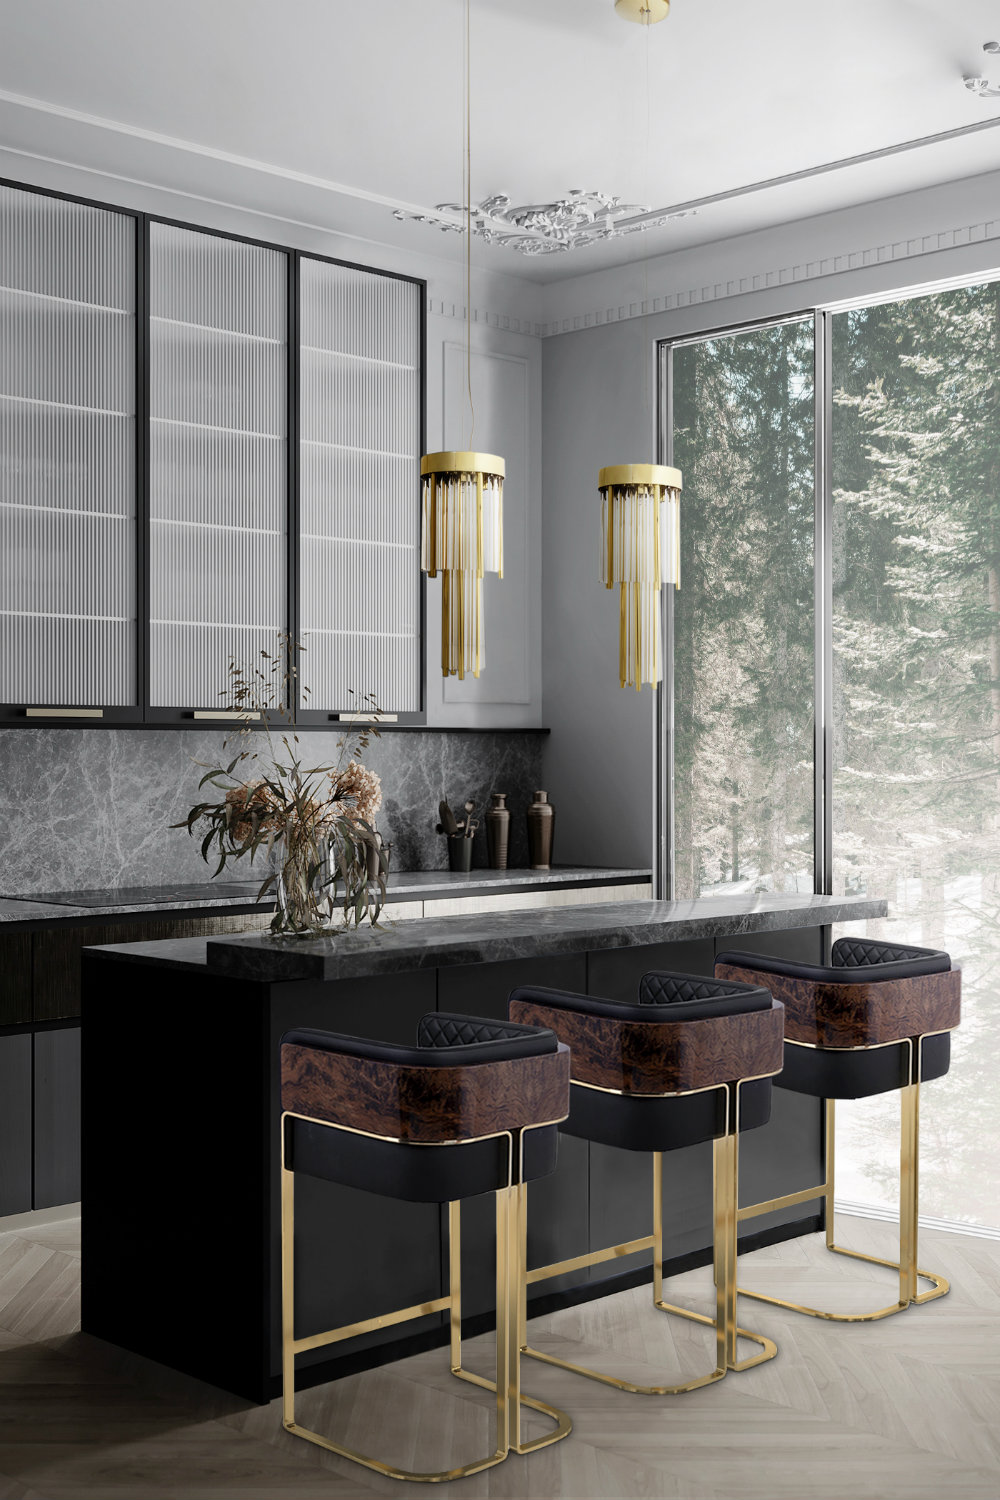 Timeless Interior Design Trends That Never Go Out Of Style 03 timeless interior design trends Timeless Interior Design Trends That Never Go Out Of Style Timeless Interior Design Trends That Never Go Out Of Style 03